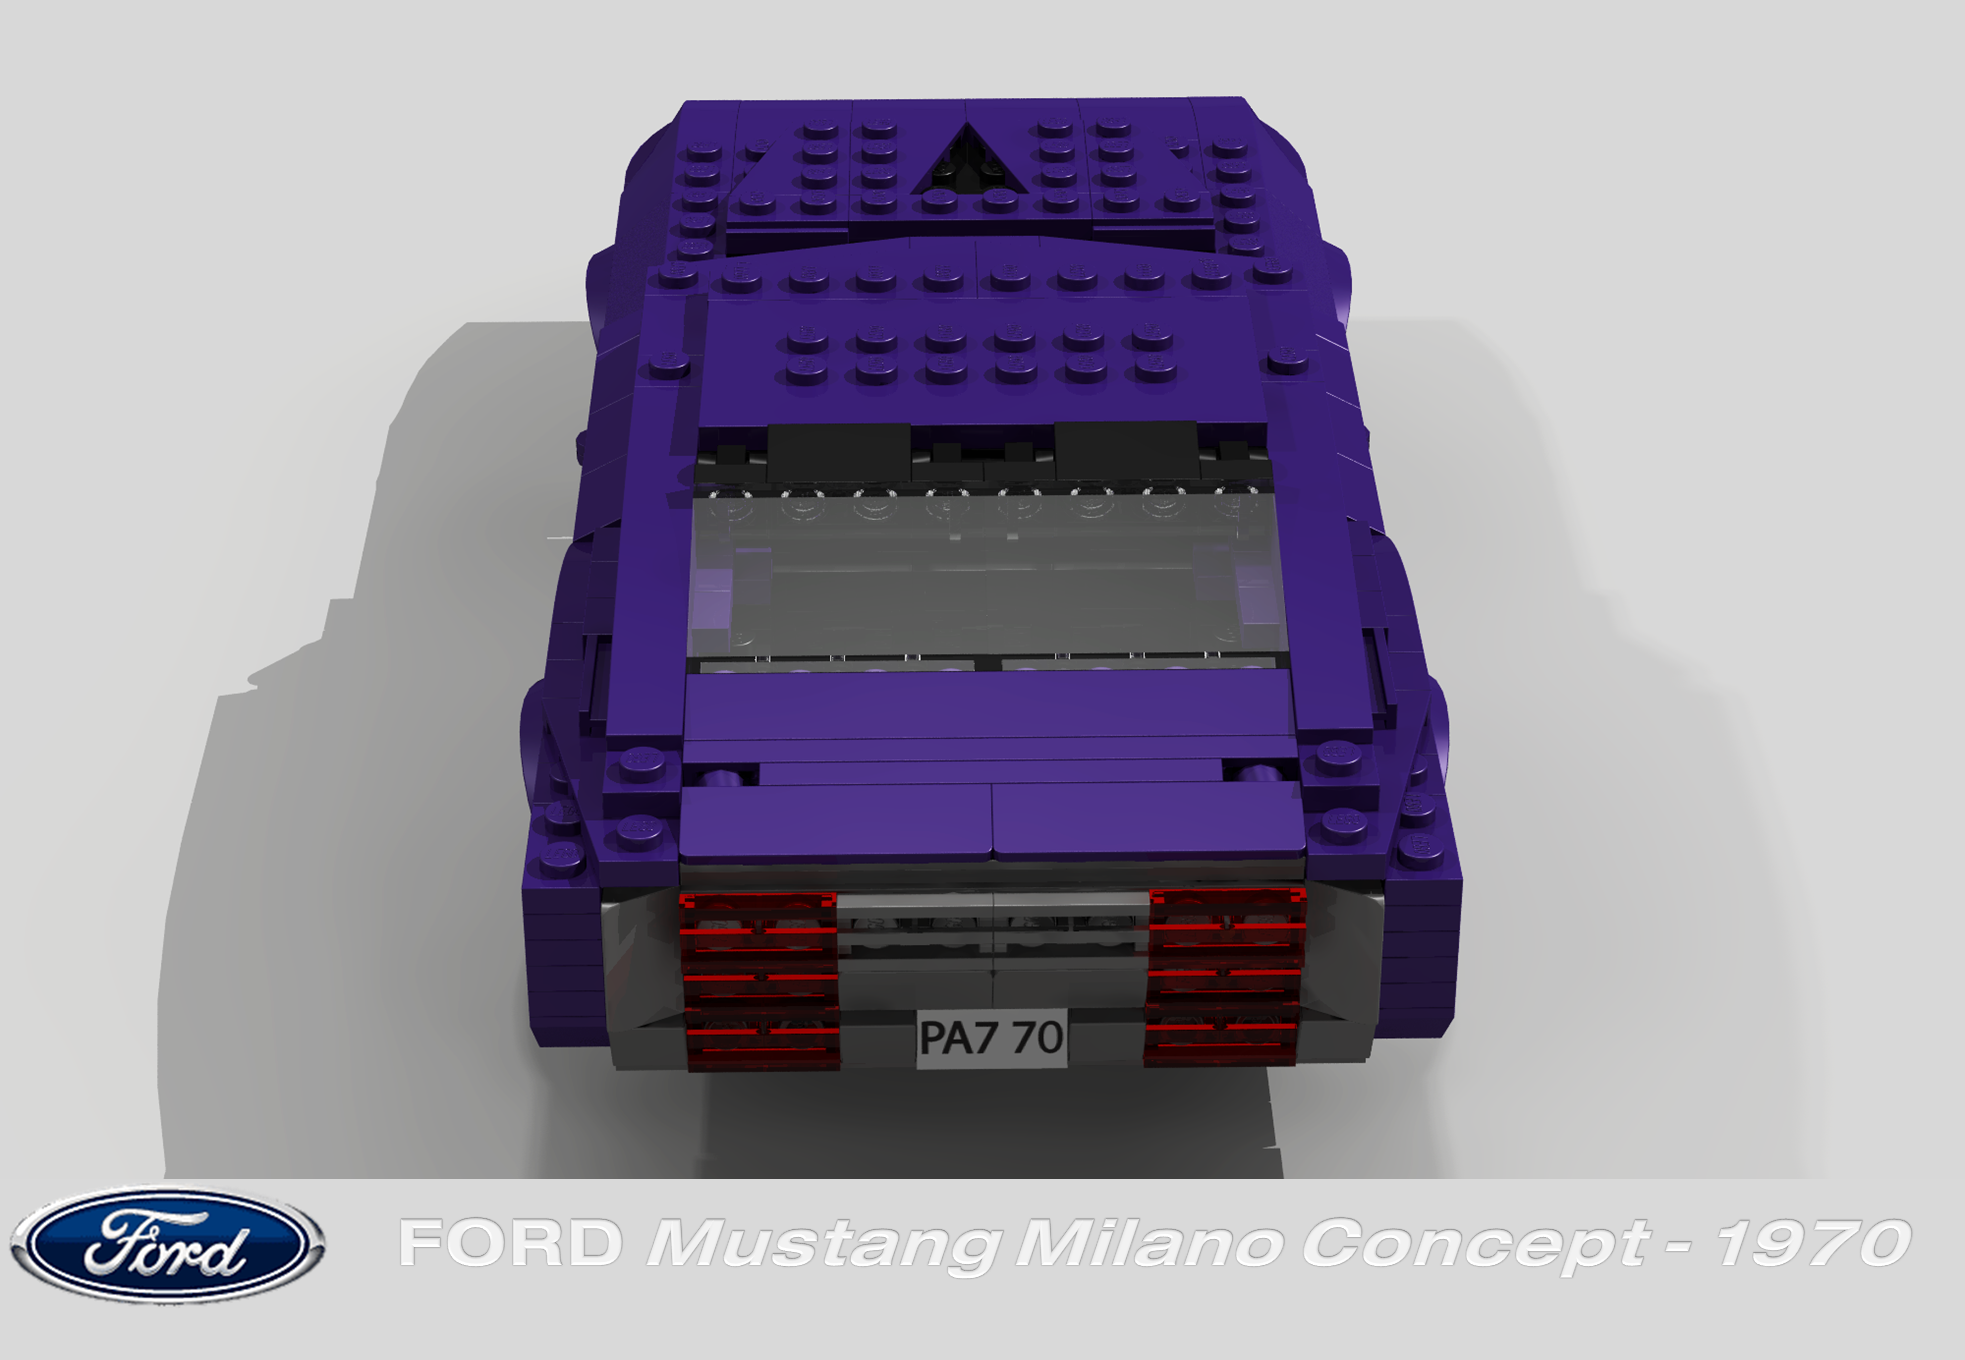 ford_mustang_milano_concept_1970_06.png